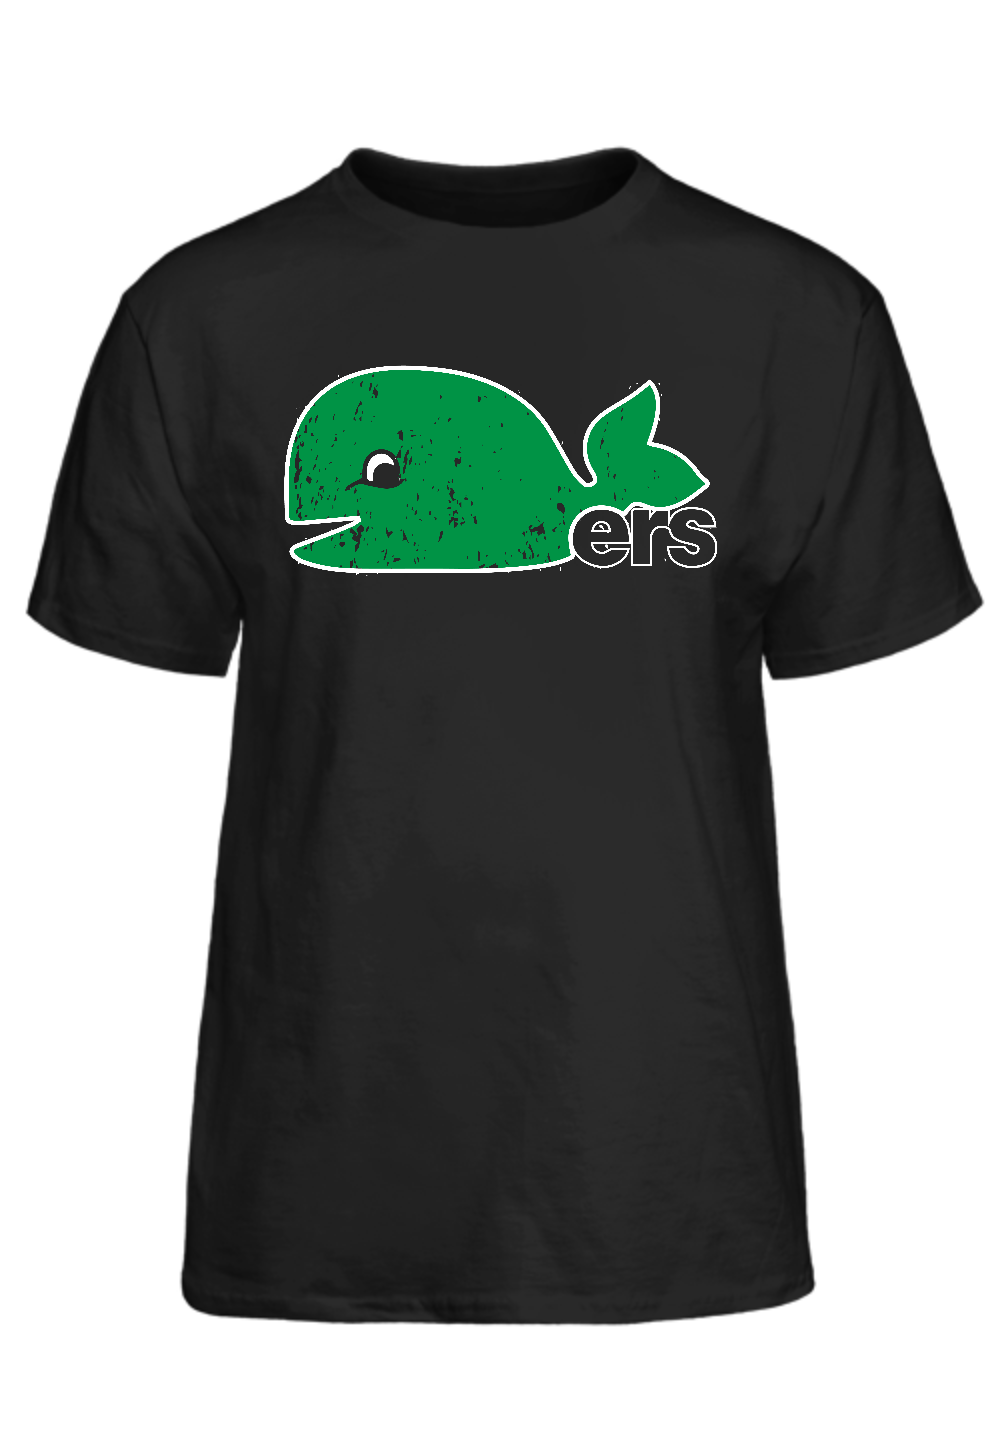 Pucky The Whale Whalers Inspired T-Shirt Basic Tee - PhillyFandom Basic Tee - Shirts PhillyFandom Philly Sports Tees